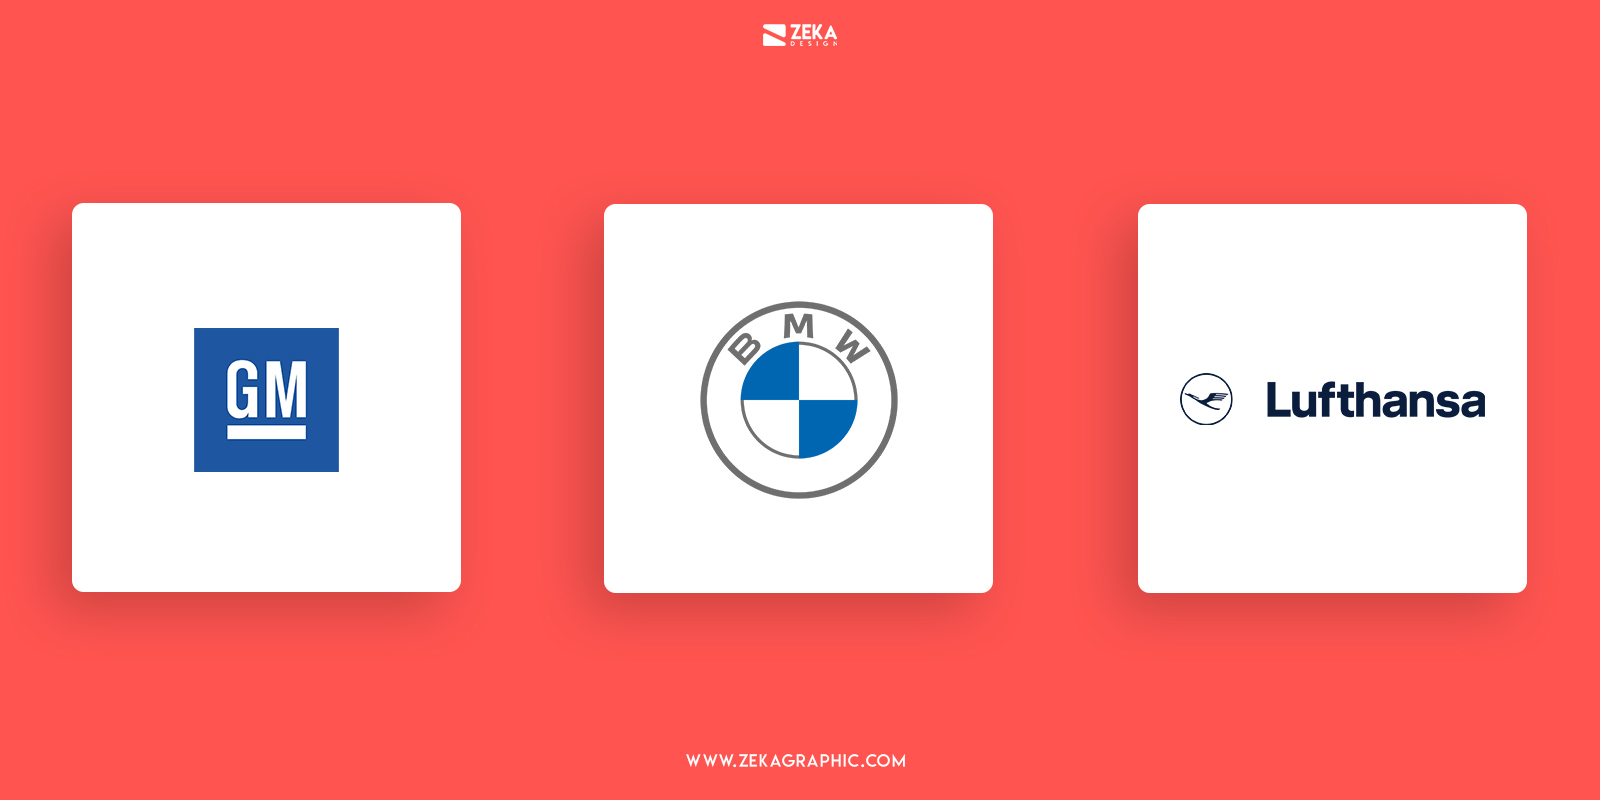 Helvetica Neue Logos Fonts Every Graphic Designer Should Have